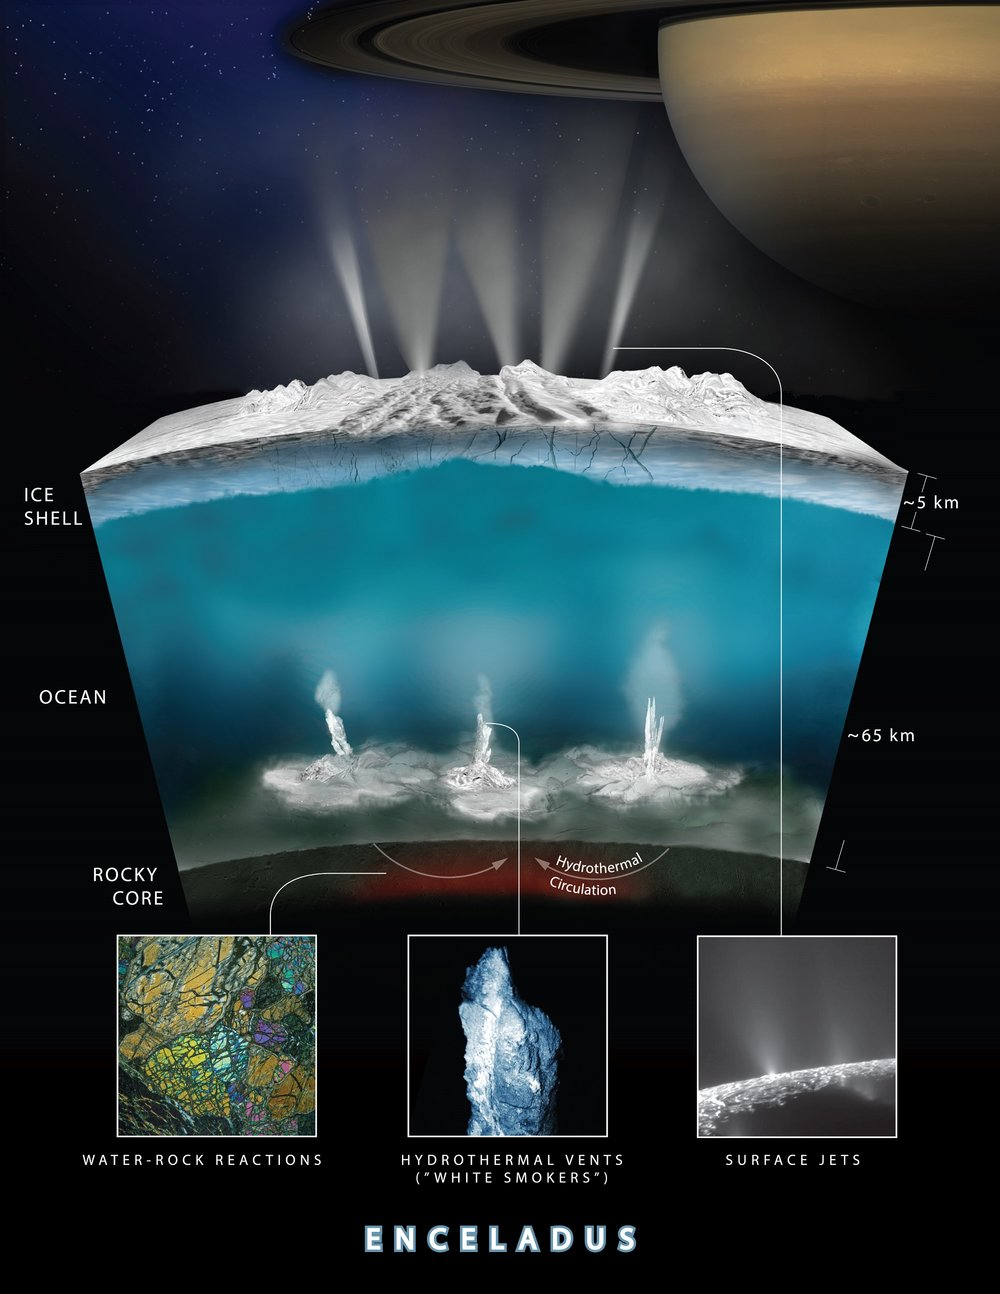 Artist rendering showing an interior cross-section of the crust of Enceladus, which shows how hydrothermal activity may be causing the plumes of water at the moon's surface.Credits: - Image Credits: NASA-GSFC/SVS, NASA/JPL-Caltech/Southwest Research Institute